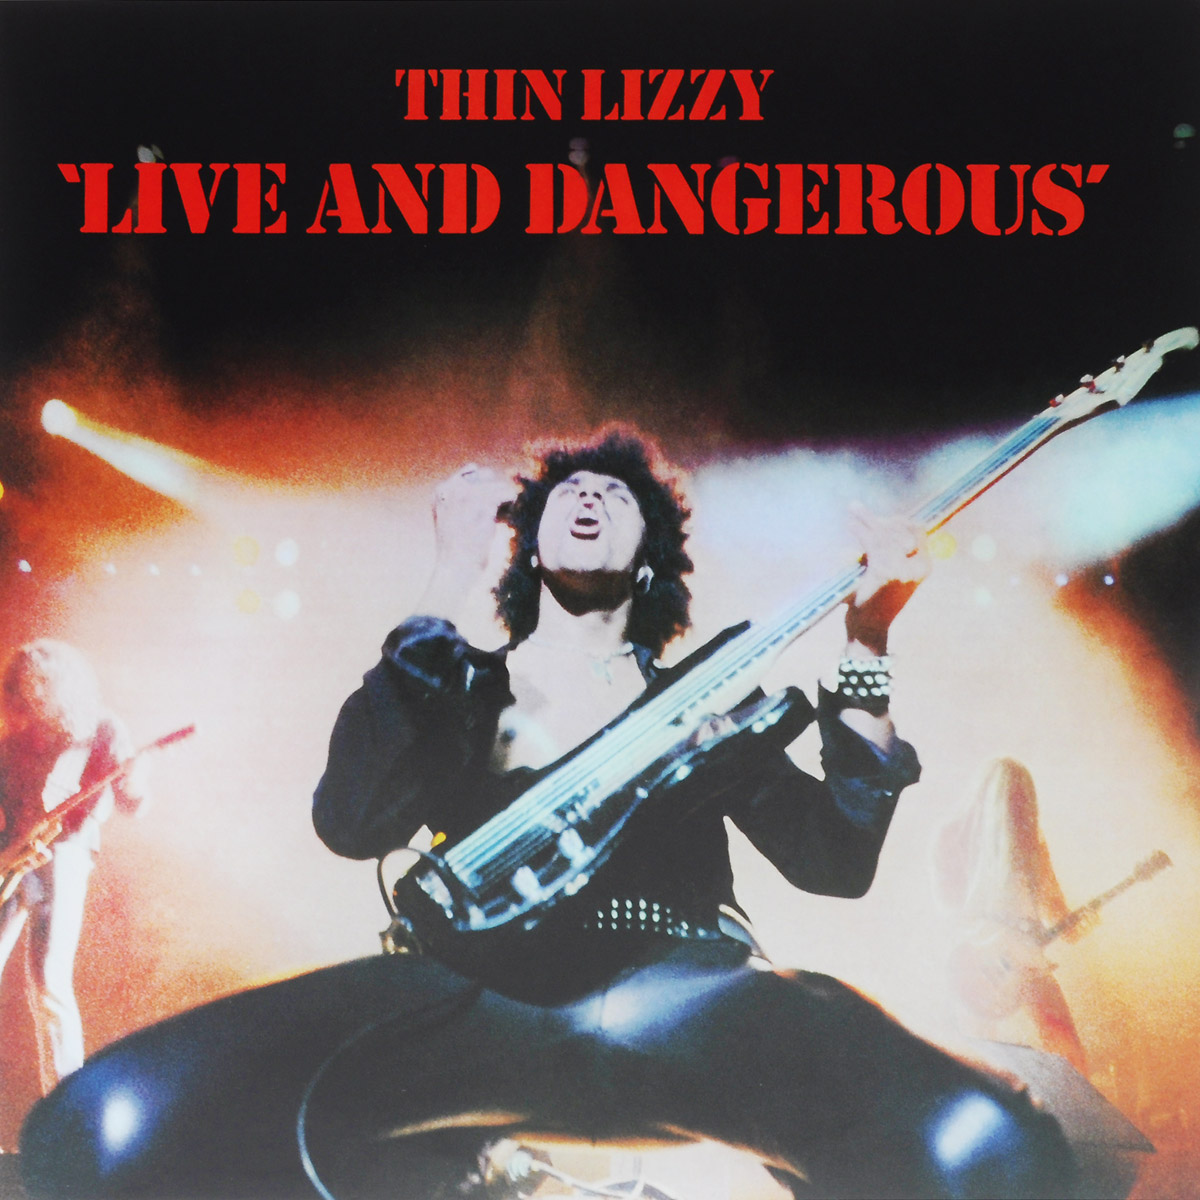 Thin Lizzy Thin Lizzy. Live And Dangerous (2 LP) кардиганы top secret кардиган